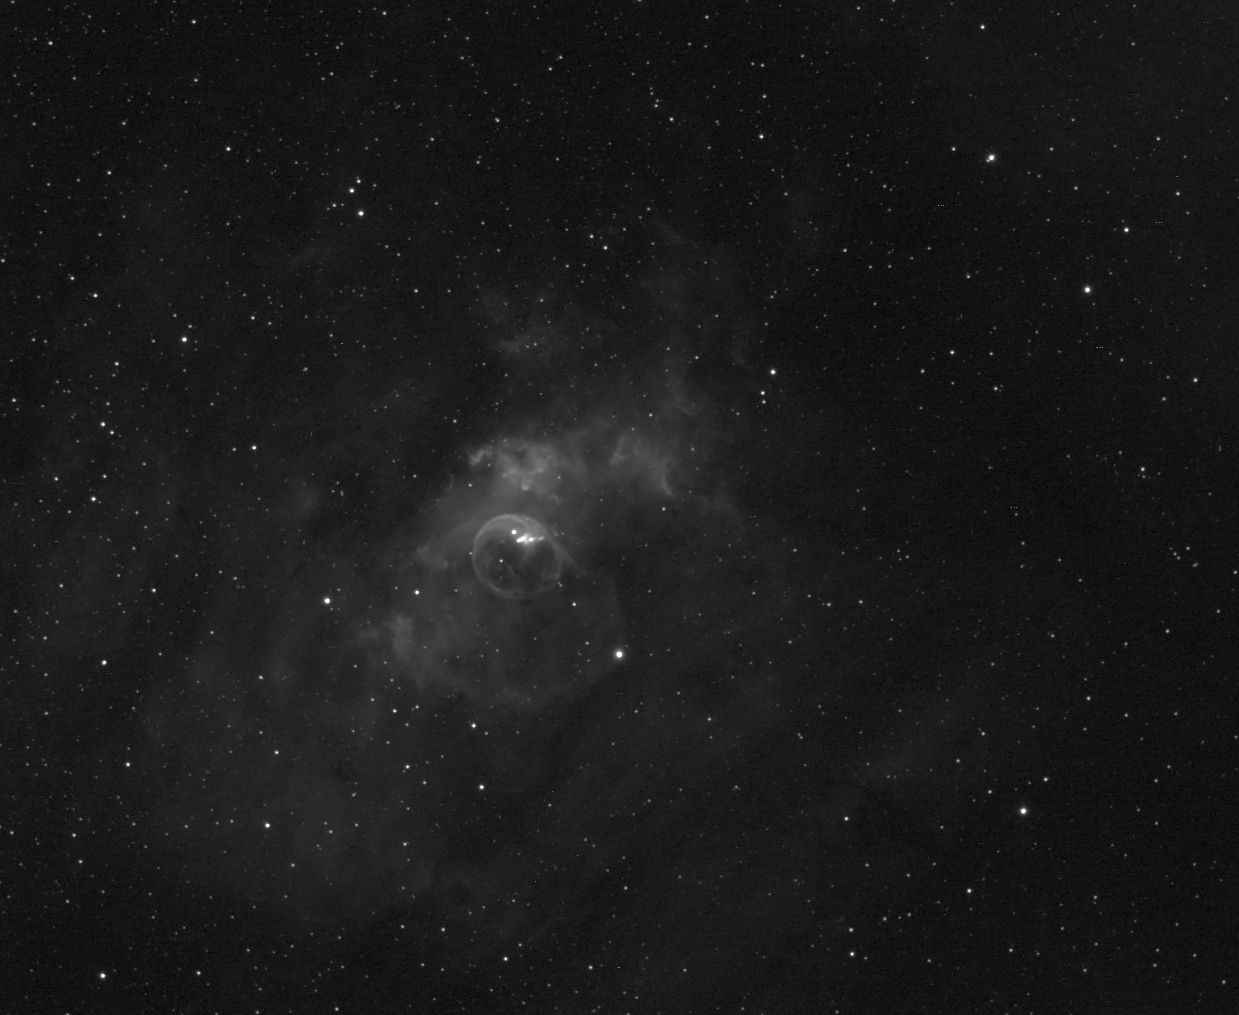 NGC 6822 - Bubble Nebula